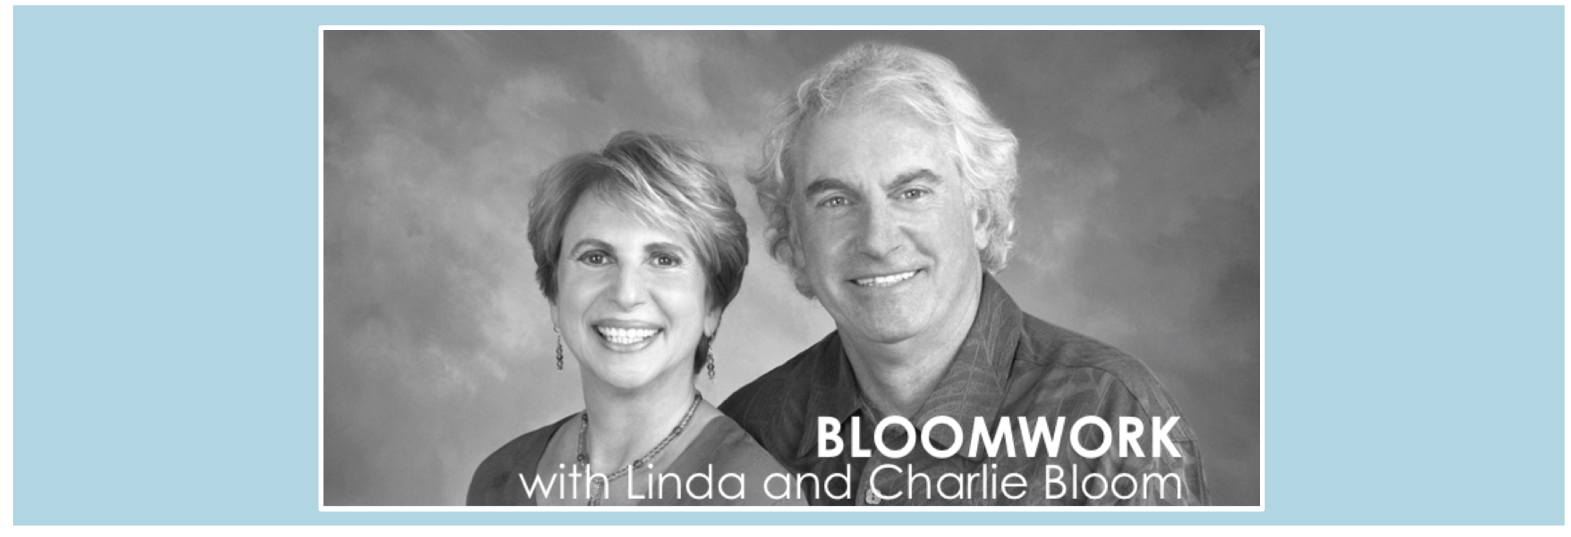 Bloomwork_newsletter_header_linda_and_charlie